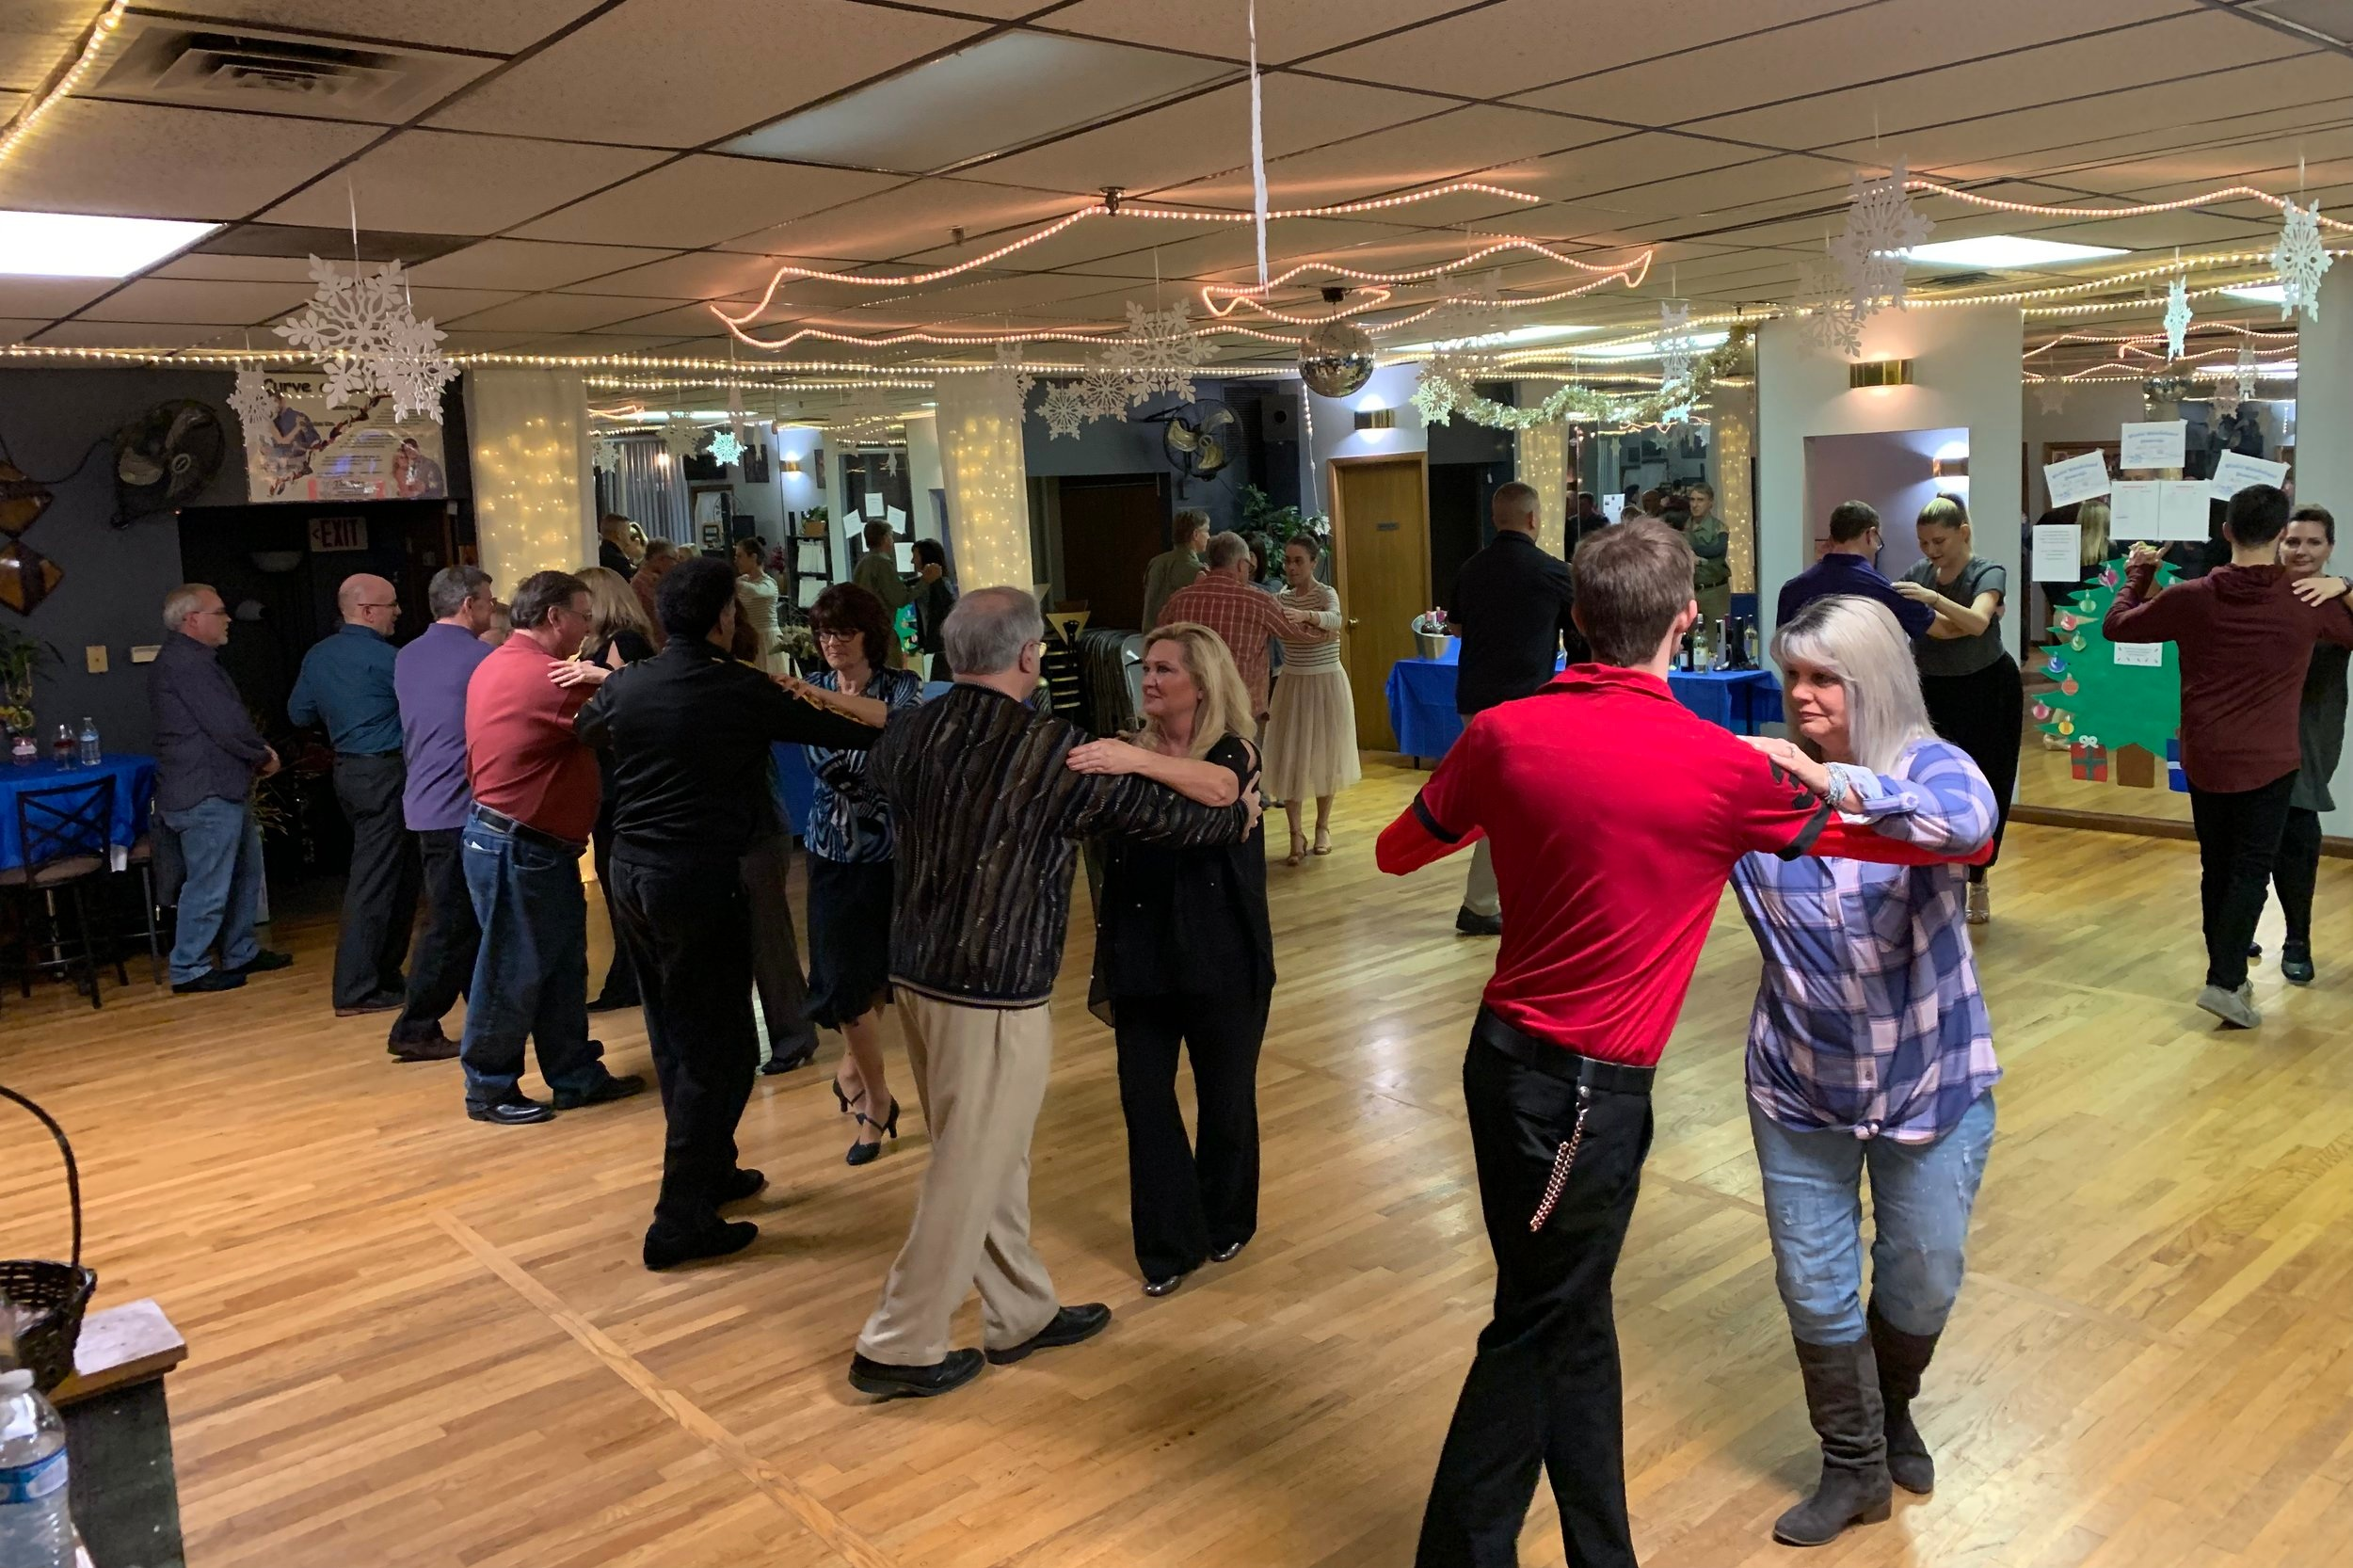 Private Group Class for your family/guests - Host a private group class for your family and friends to learn basic couples dancing or line dancing to rock your reception!